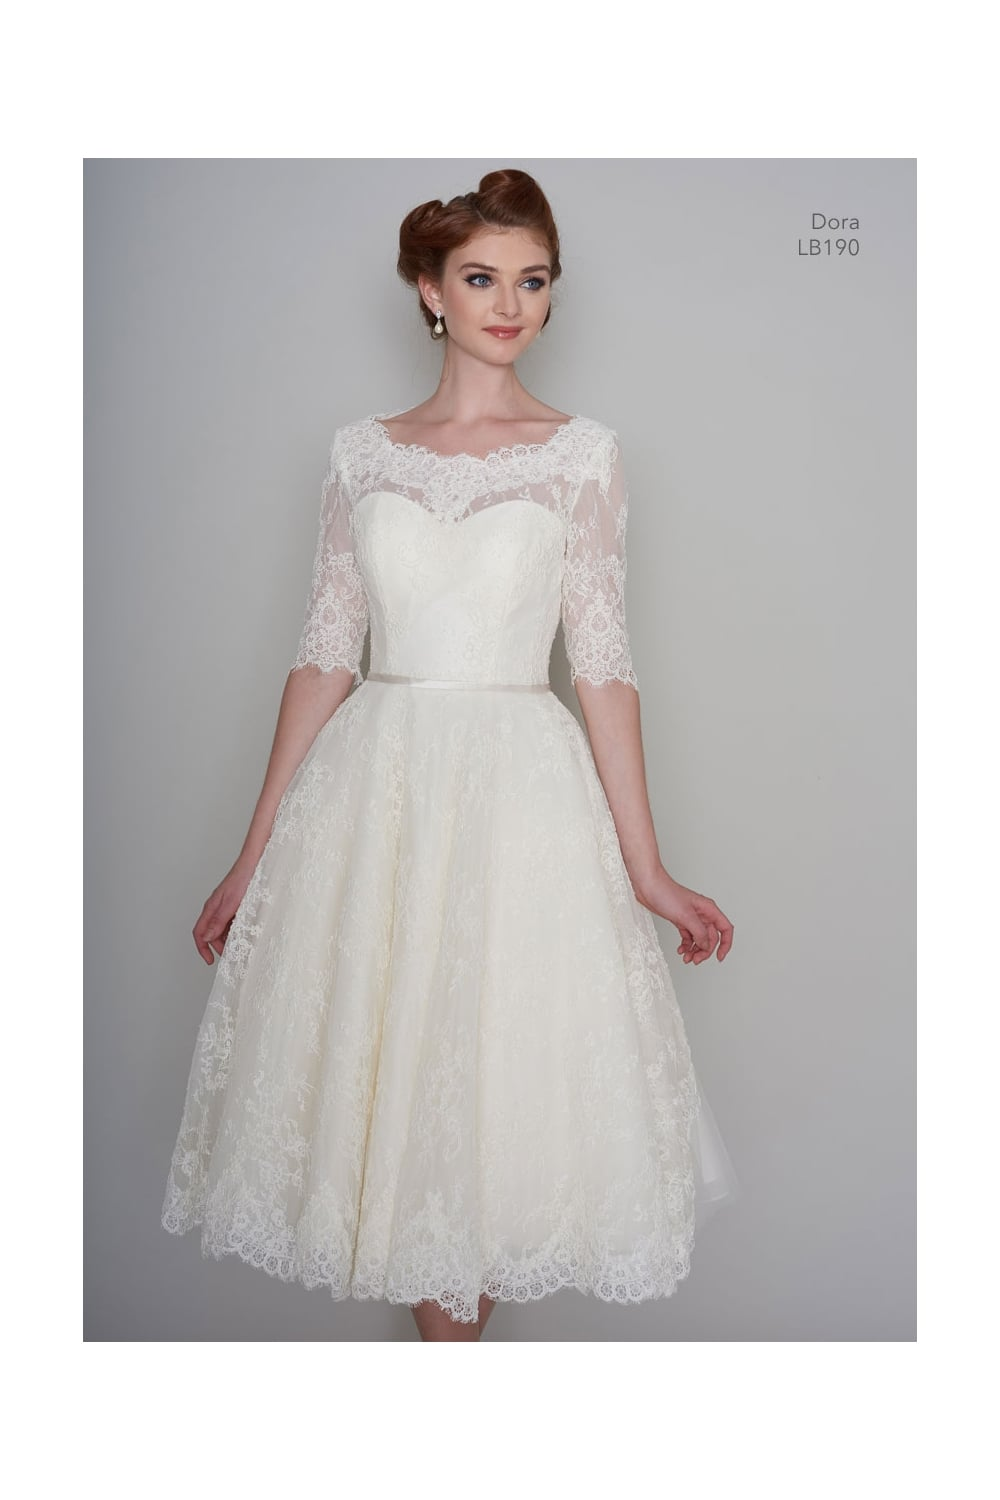 10b939c34f9c5 DORA Tea Length Vintage Lace 1950s 60s Short Wedding Dress With 1/2 Sleeve